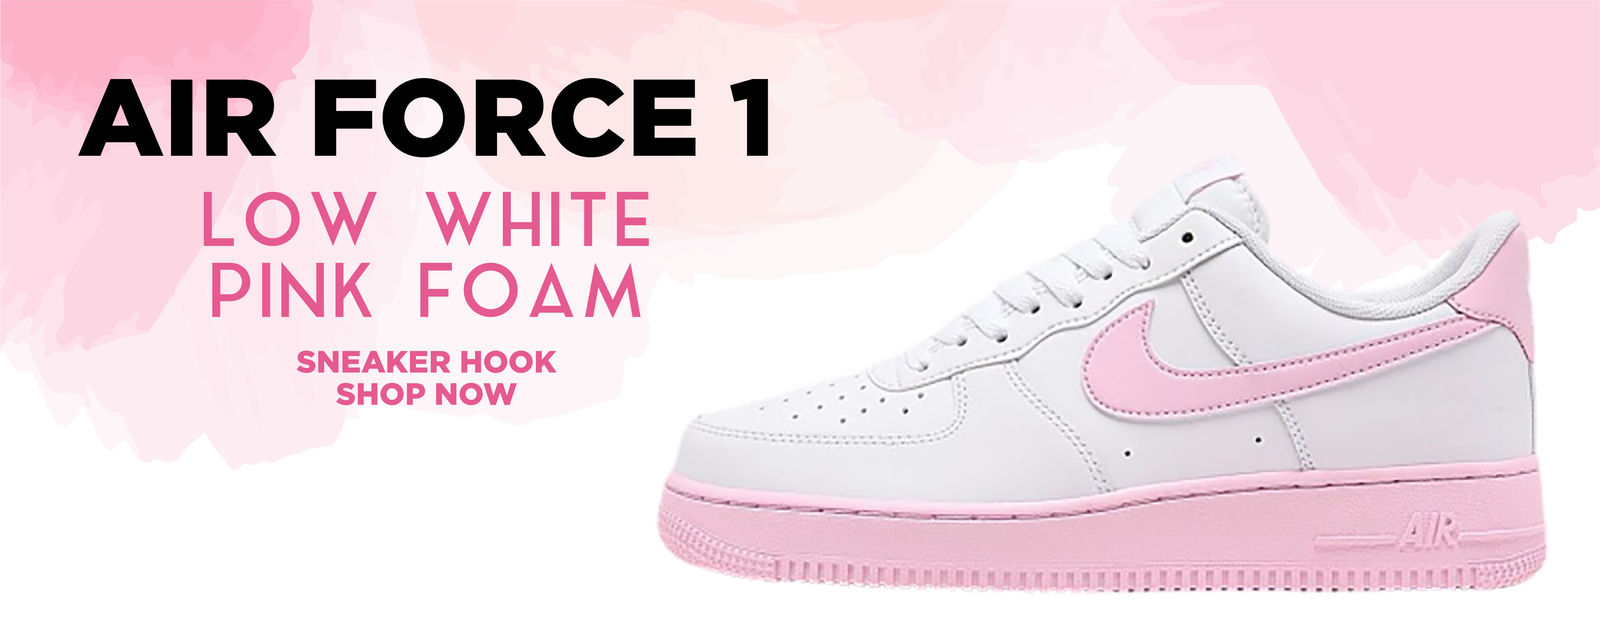 Air Force 1 Low White Pink Foam Clothing To Match Sneakers